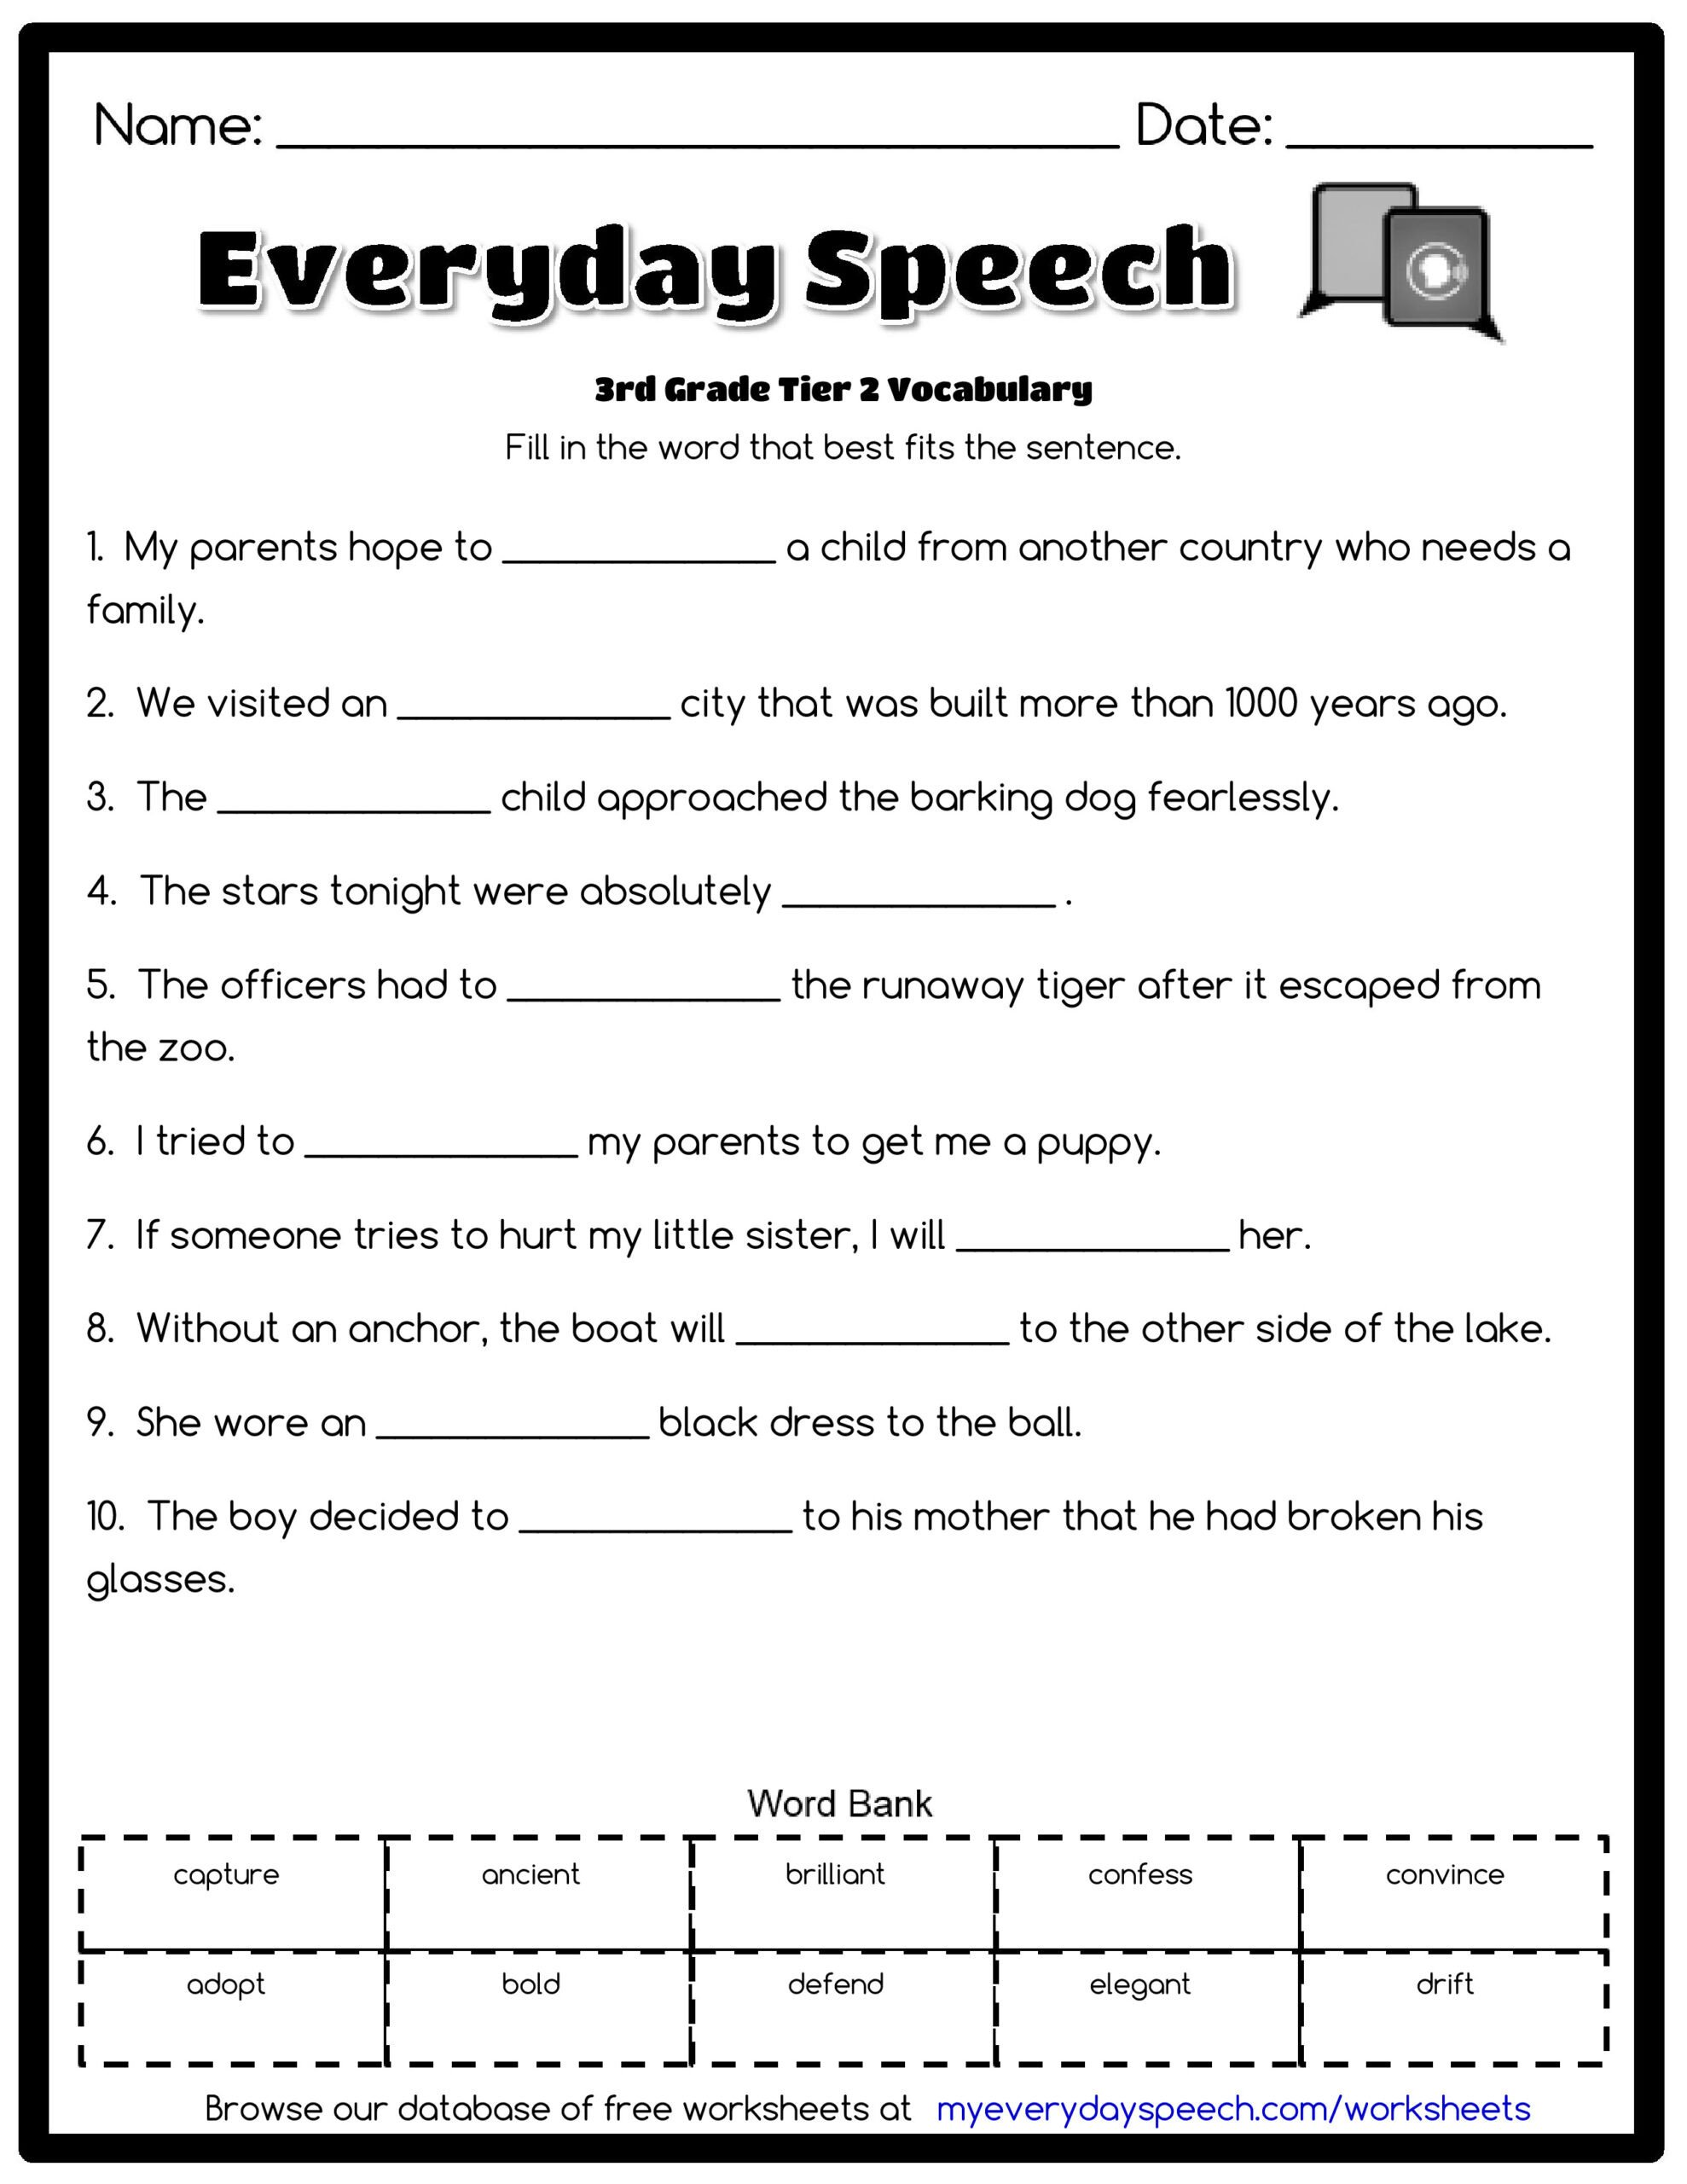 Eighth Grade Vocabulary Worksheets 3rd Grade Vocabulary Worksheets for Free Preschool Worksheet